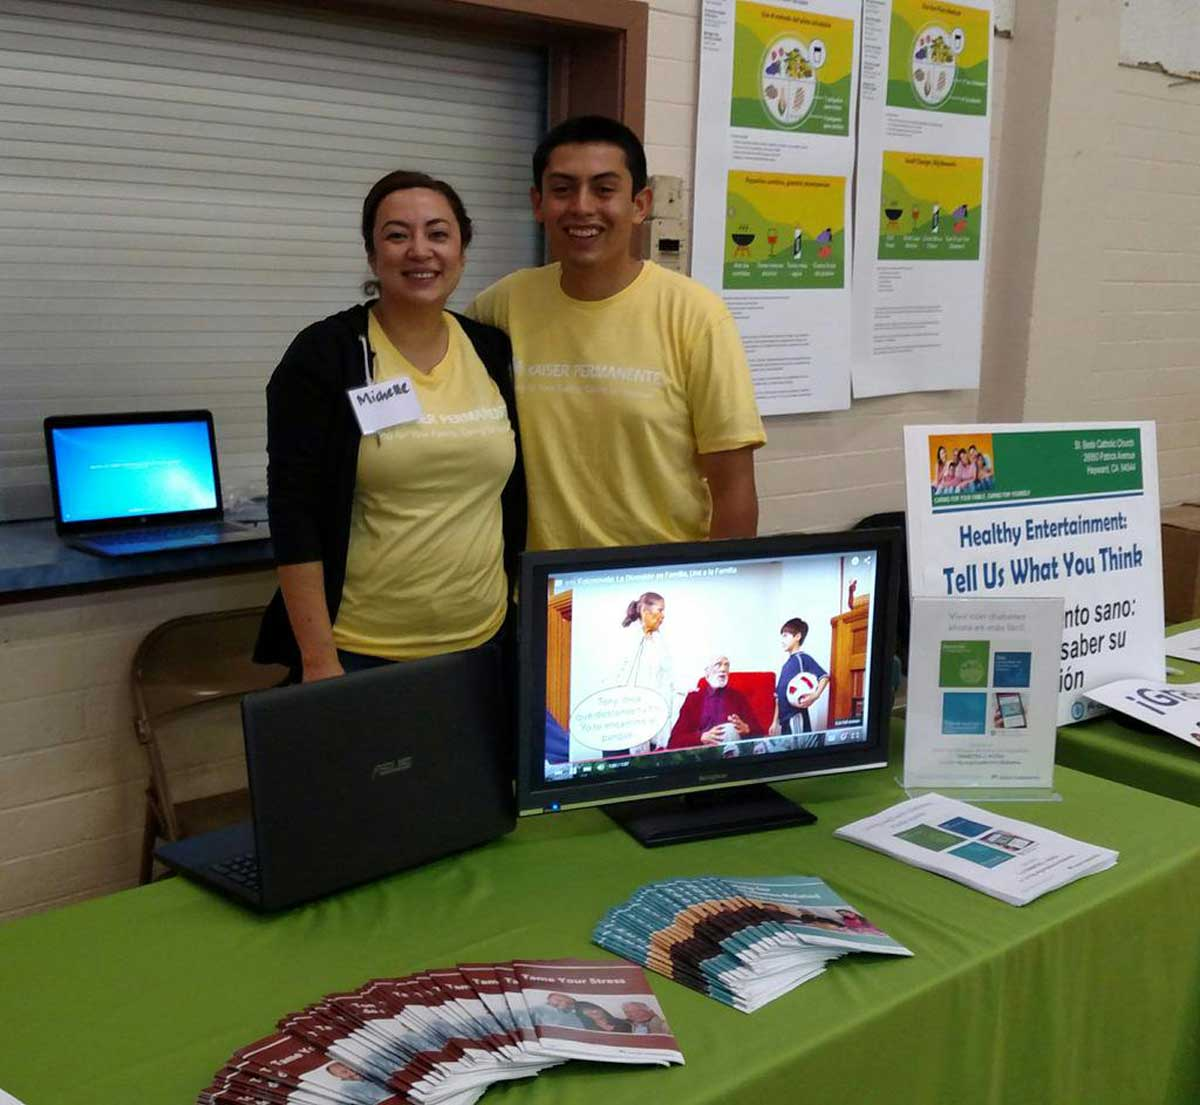 With Michelle of Health Education at a Community Health Fair